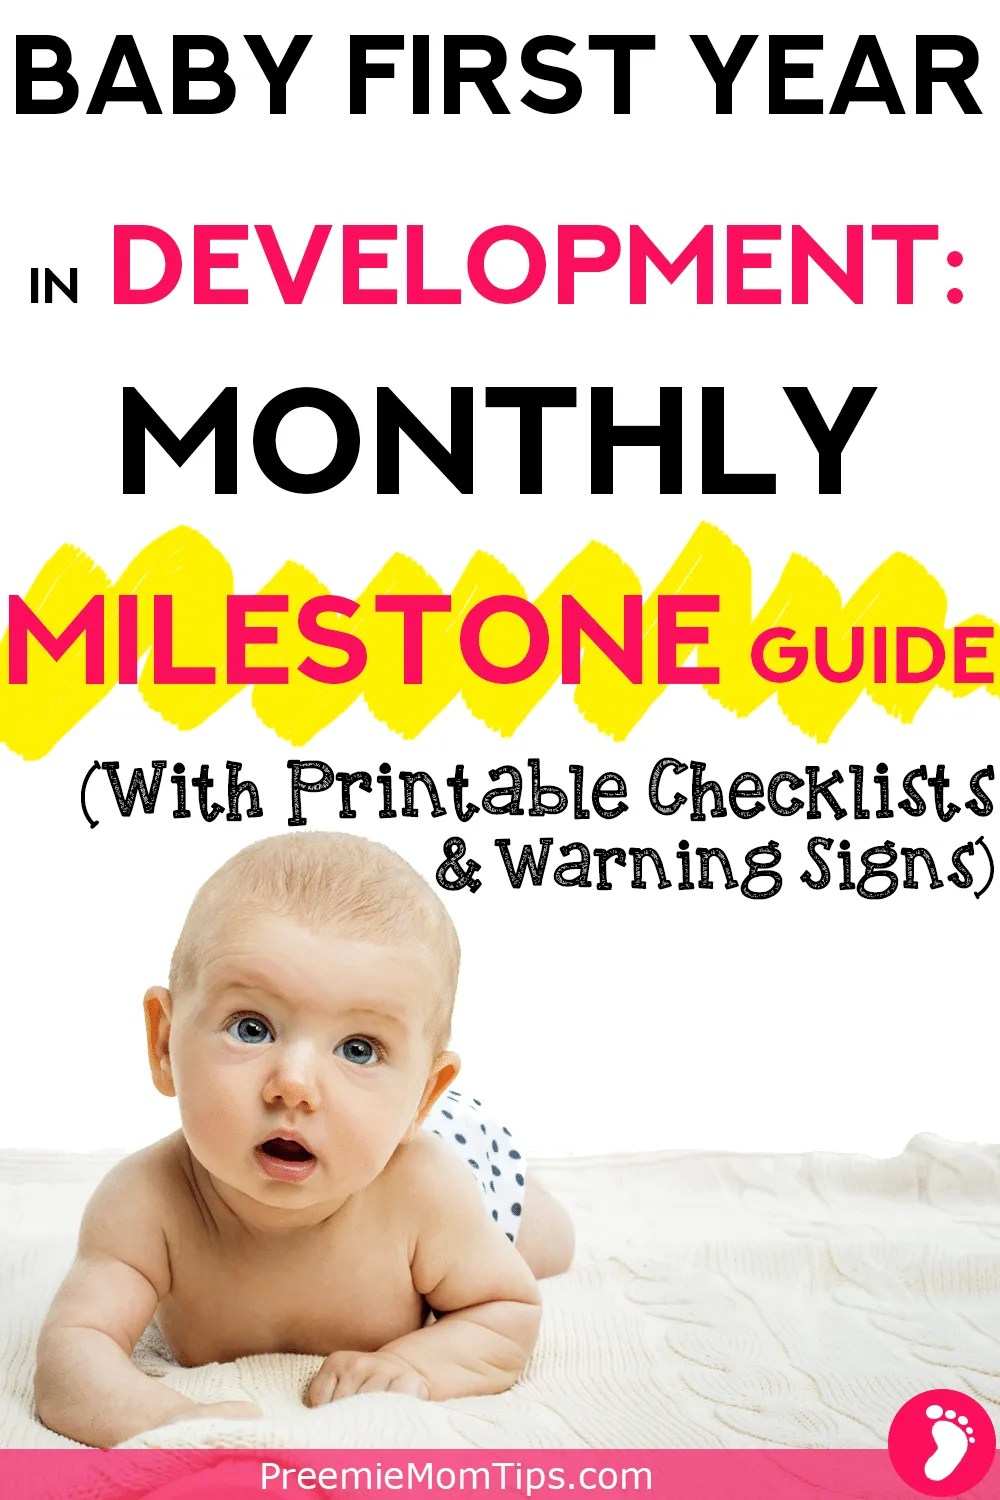 Understand your baby's development stages with this guide to baby milestones by month.